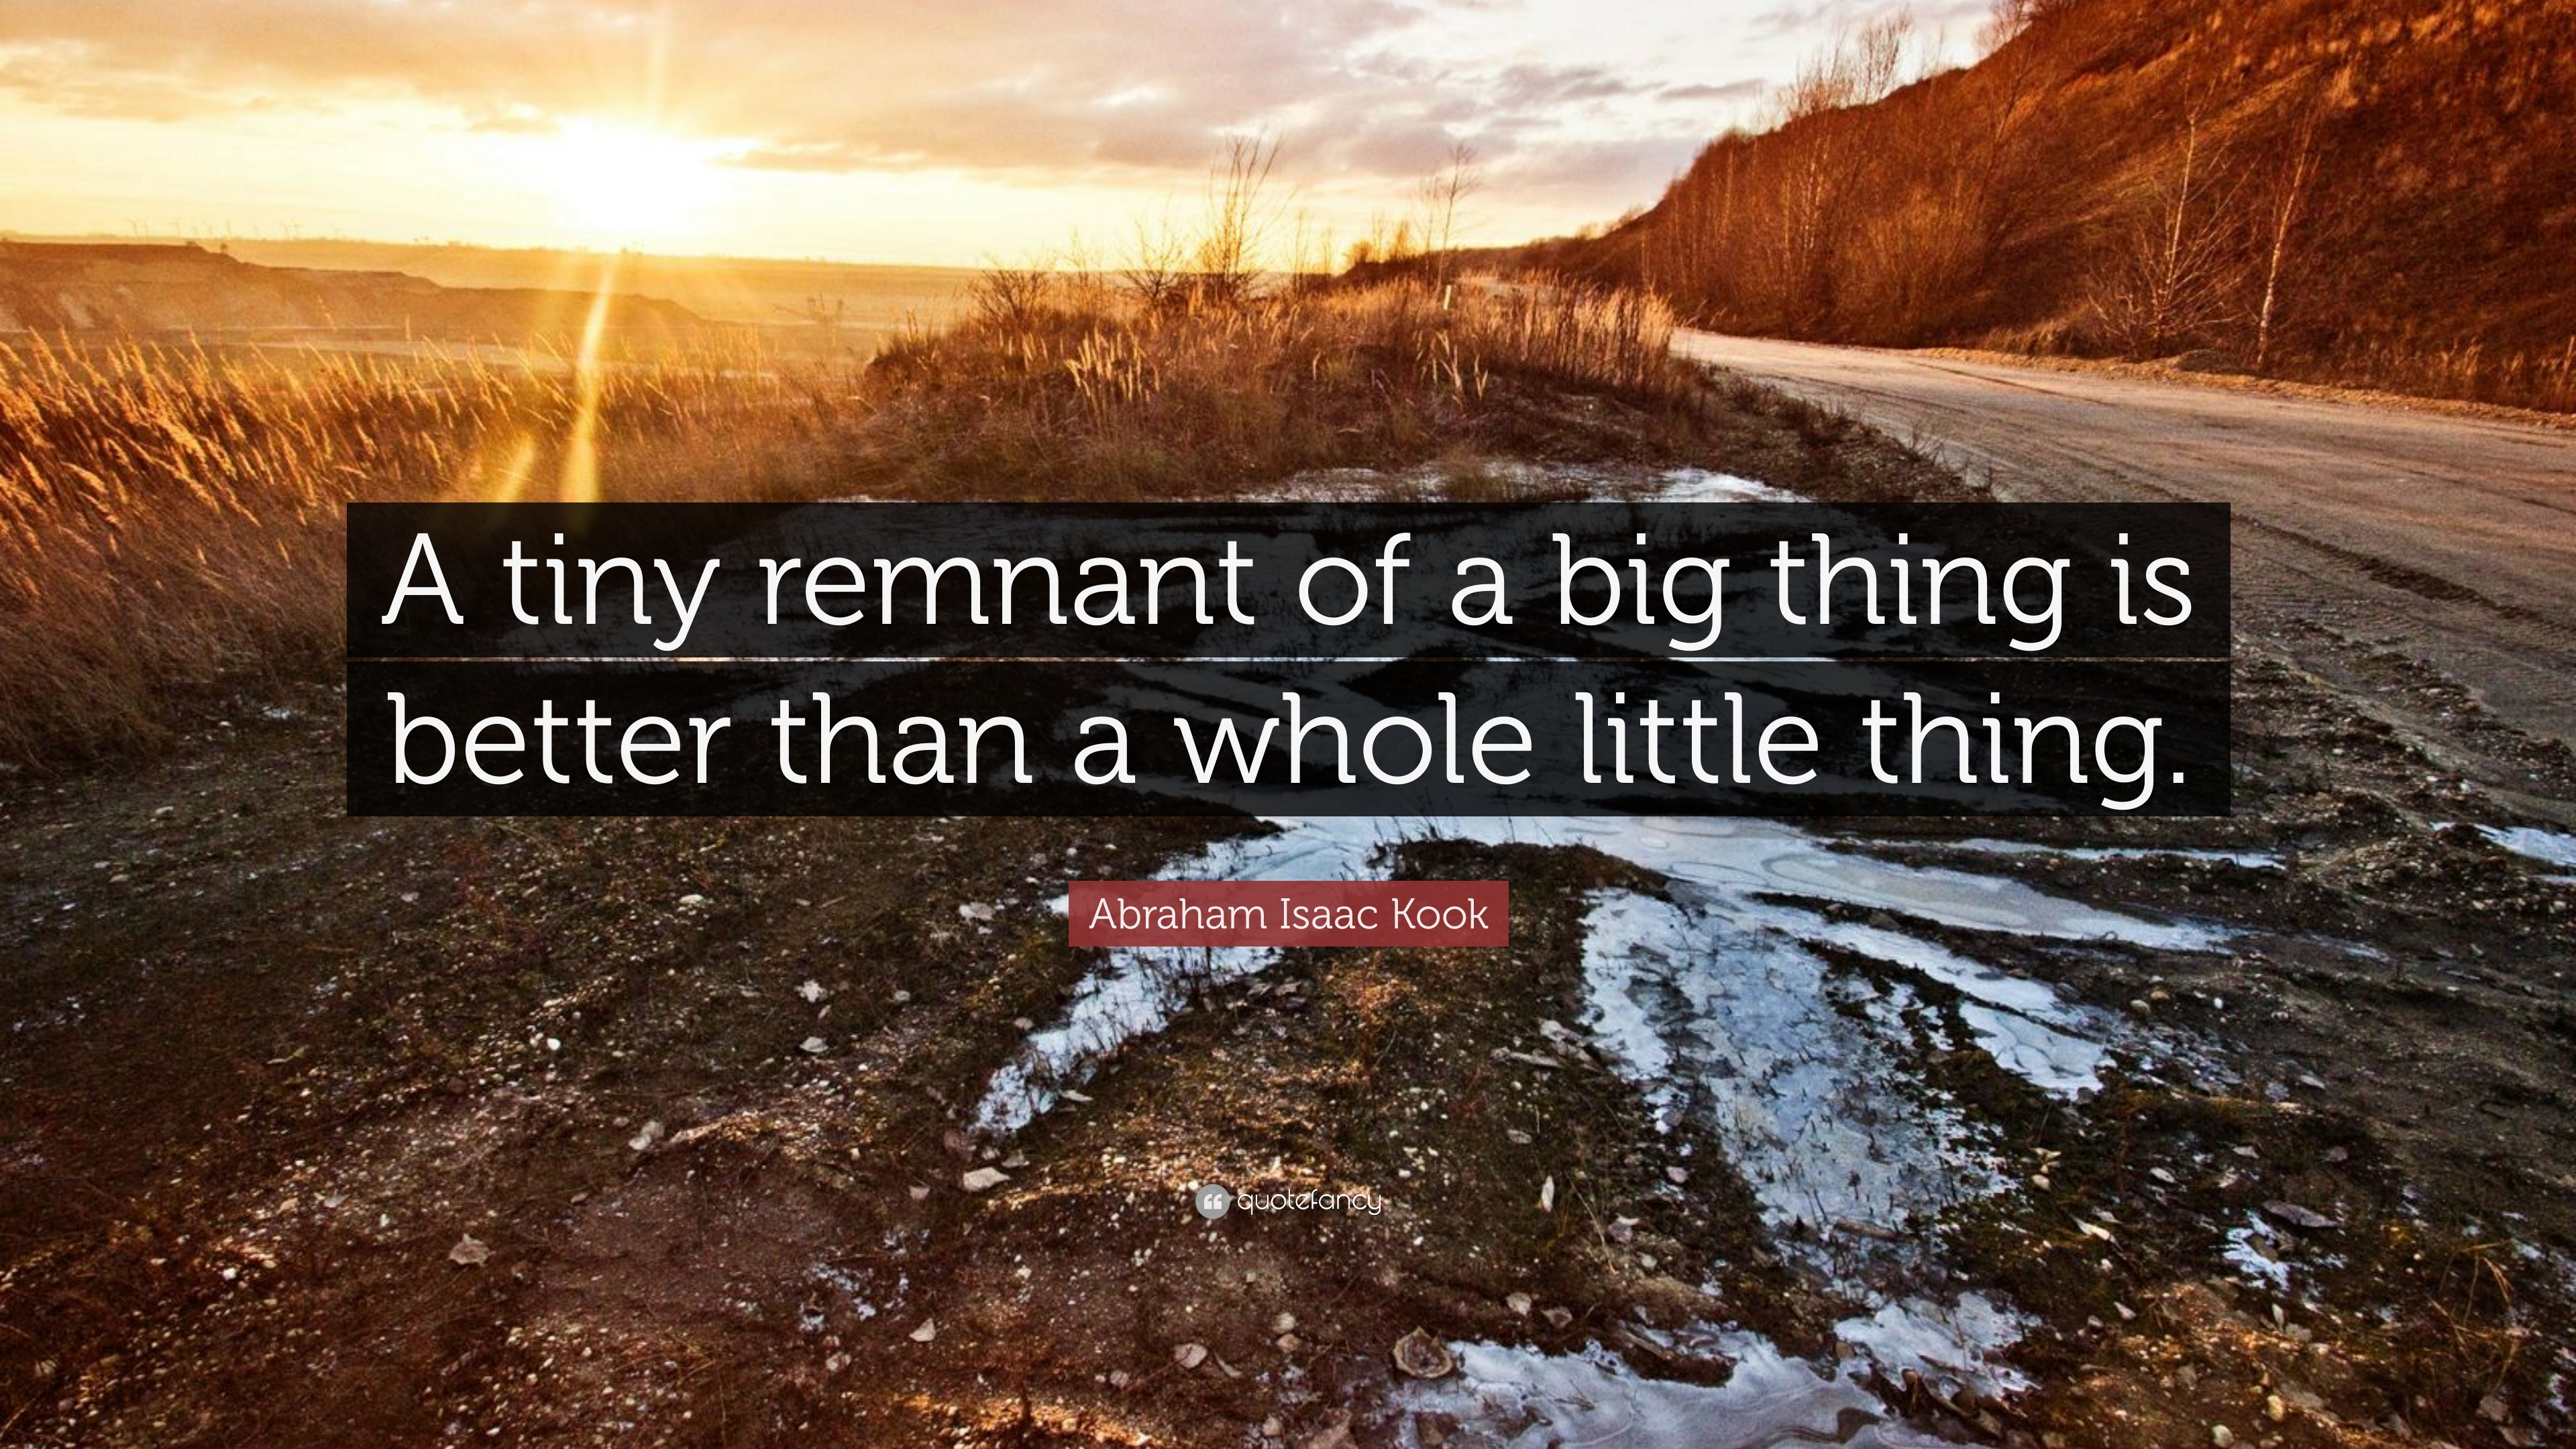 A little thing is better than big idleness: the meaning of the proverb 43